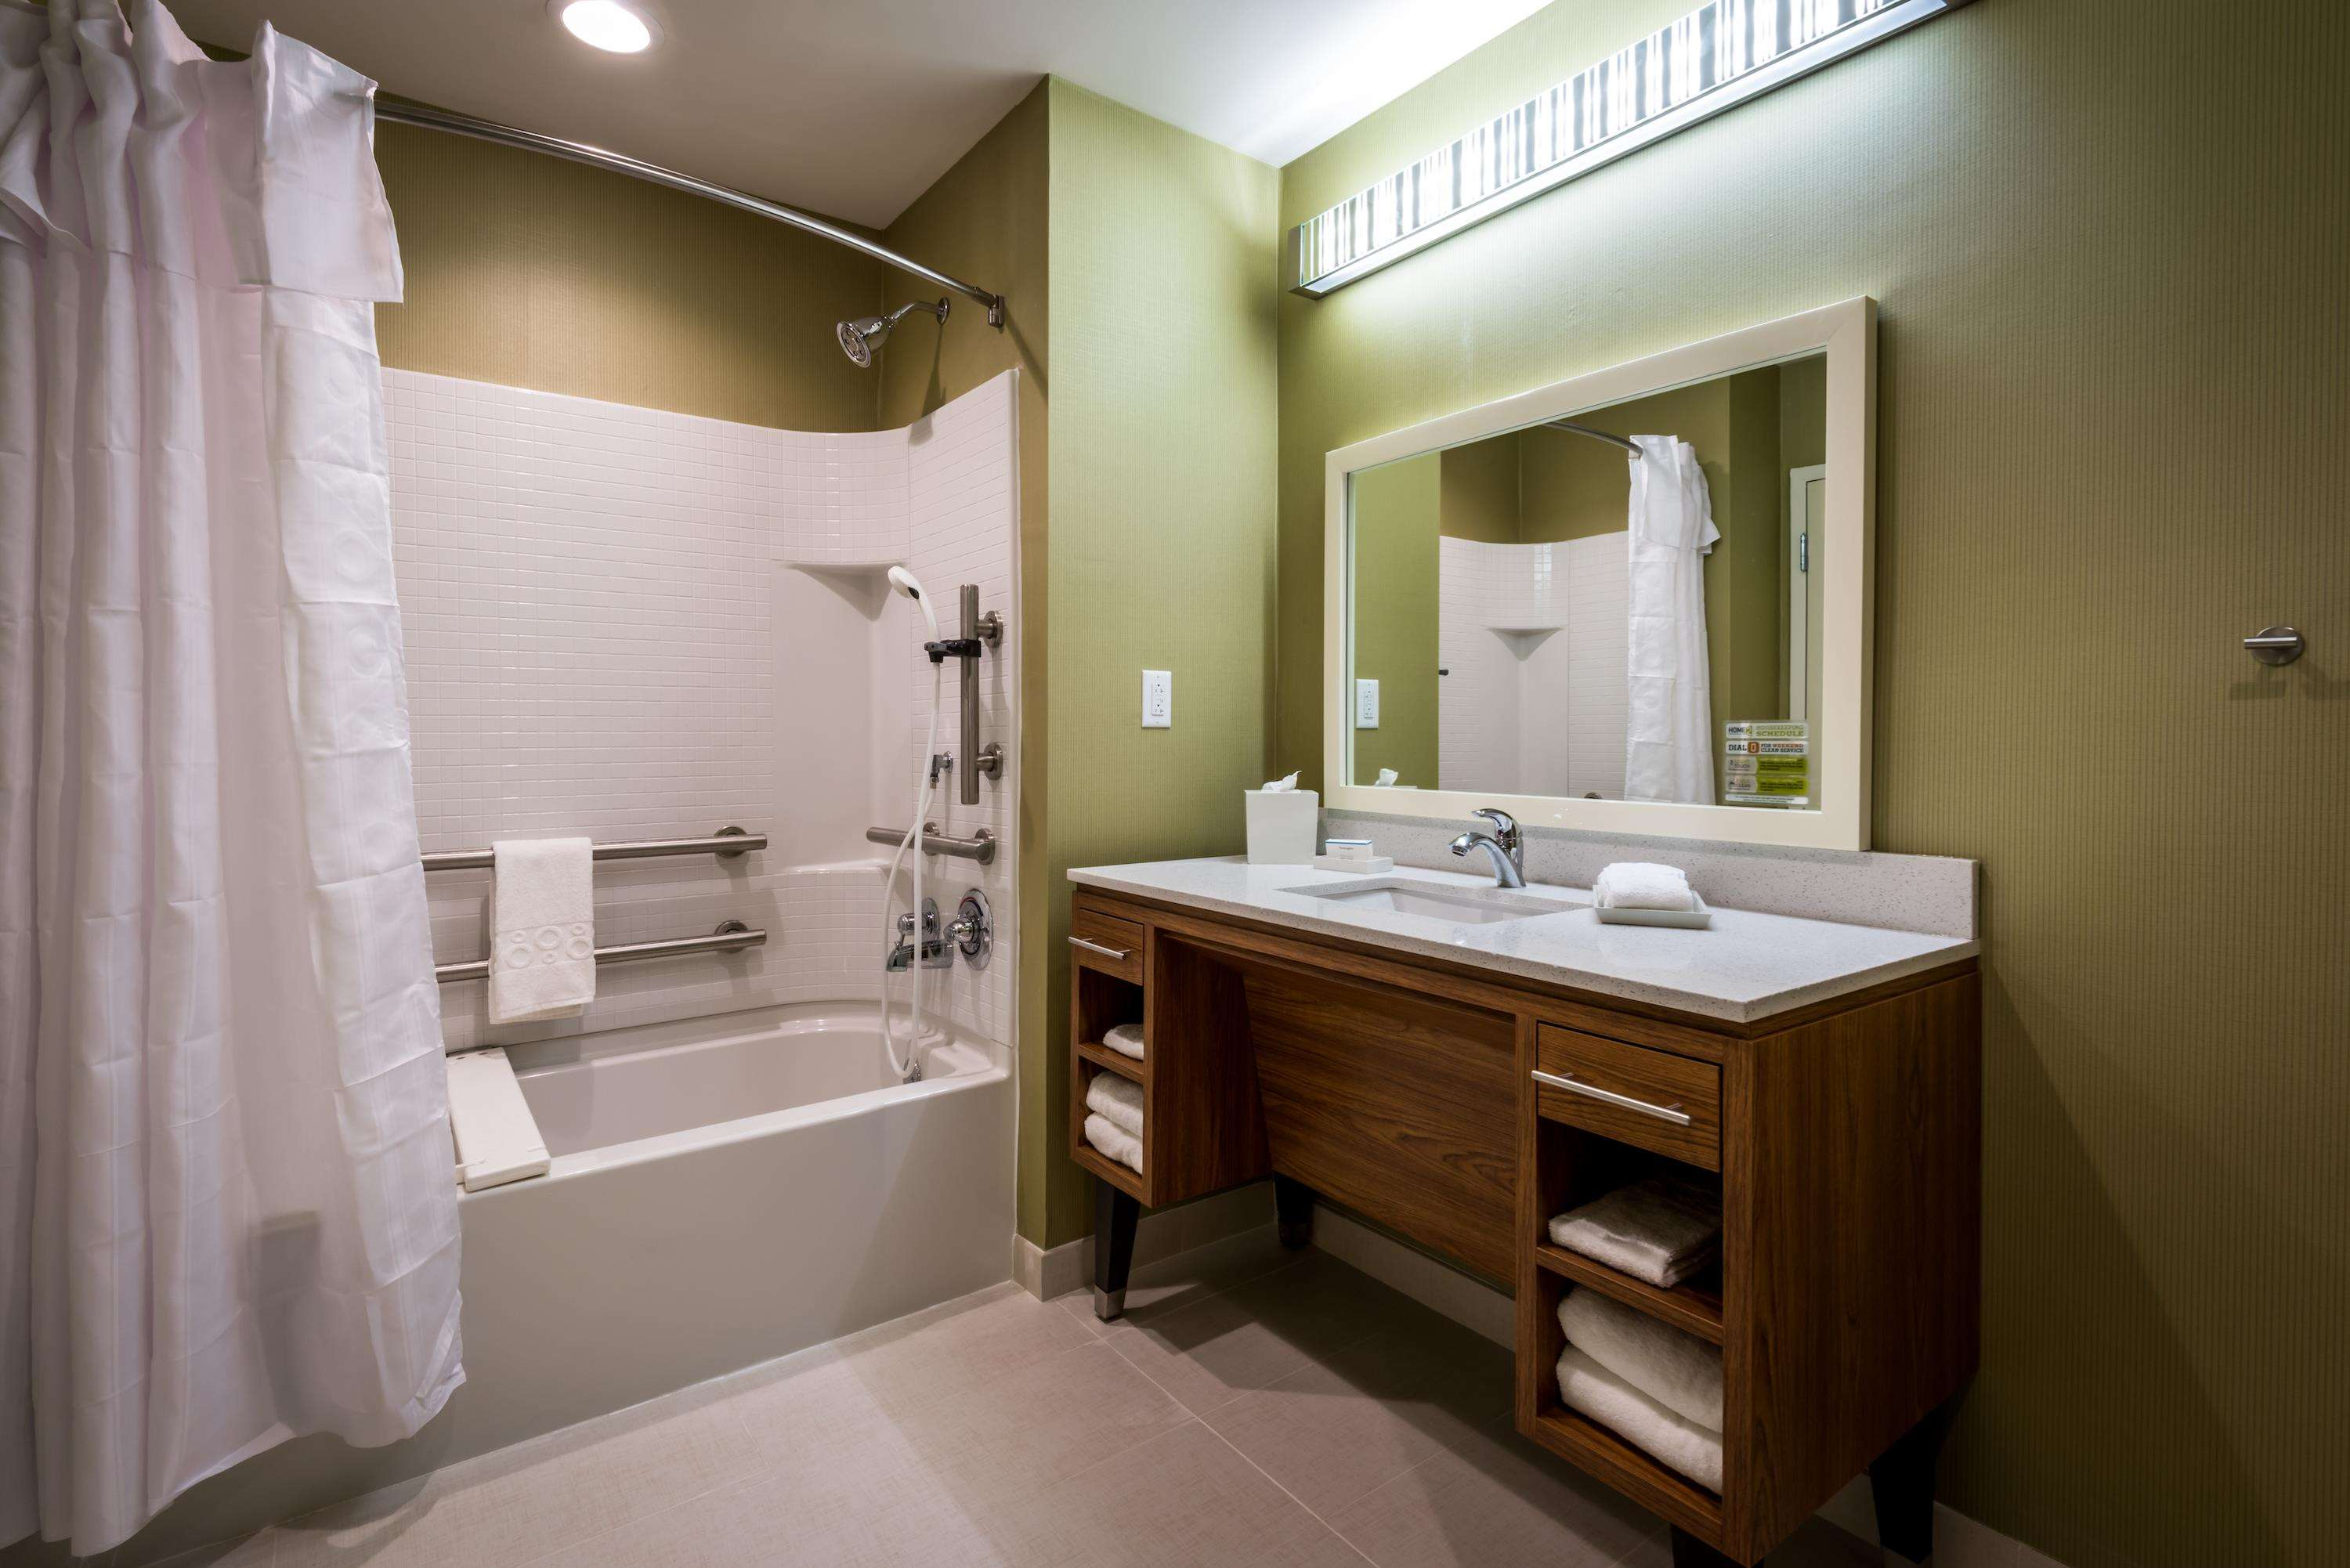 Home2 Suites by Hilton Gulfport I-10 image 44